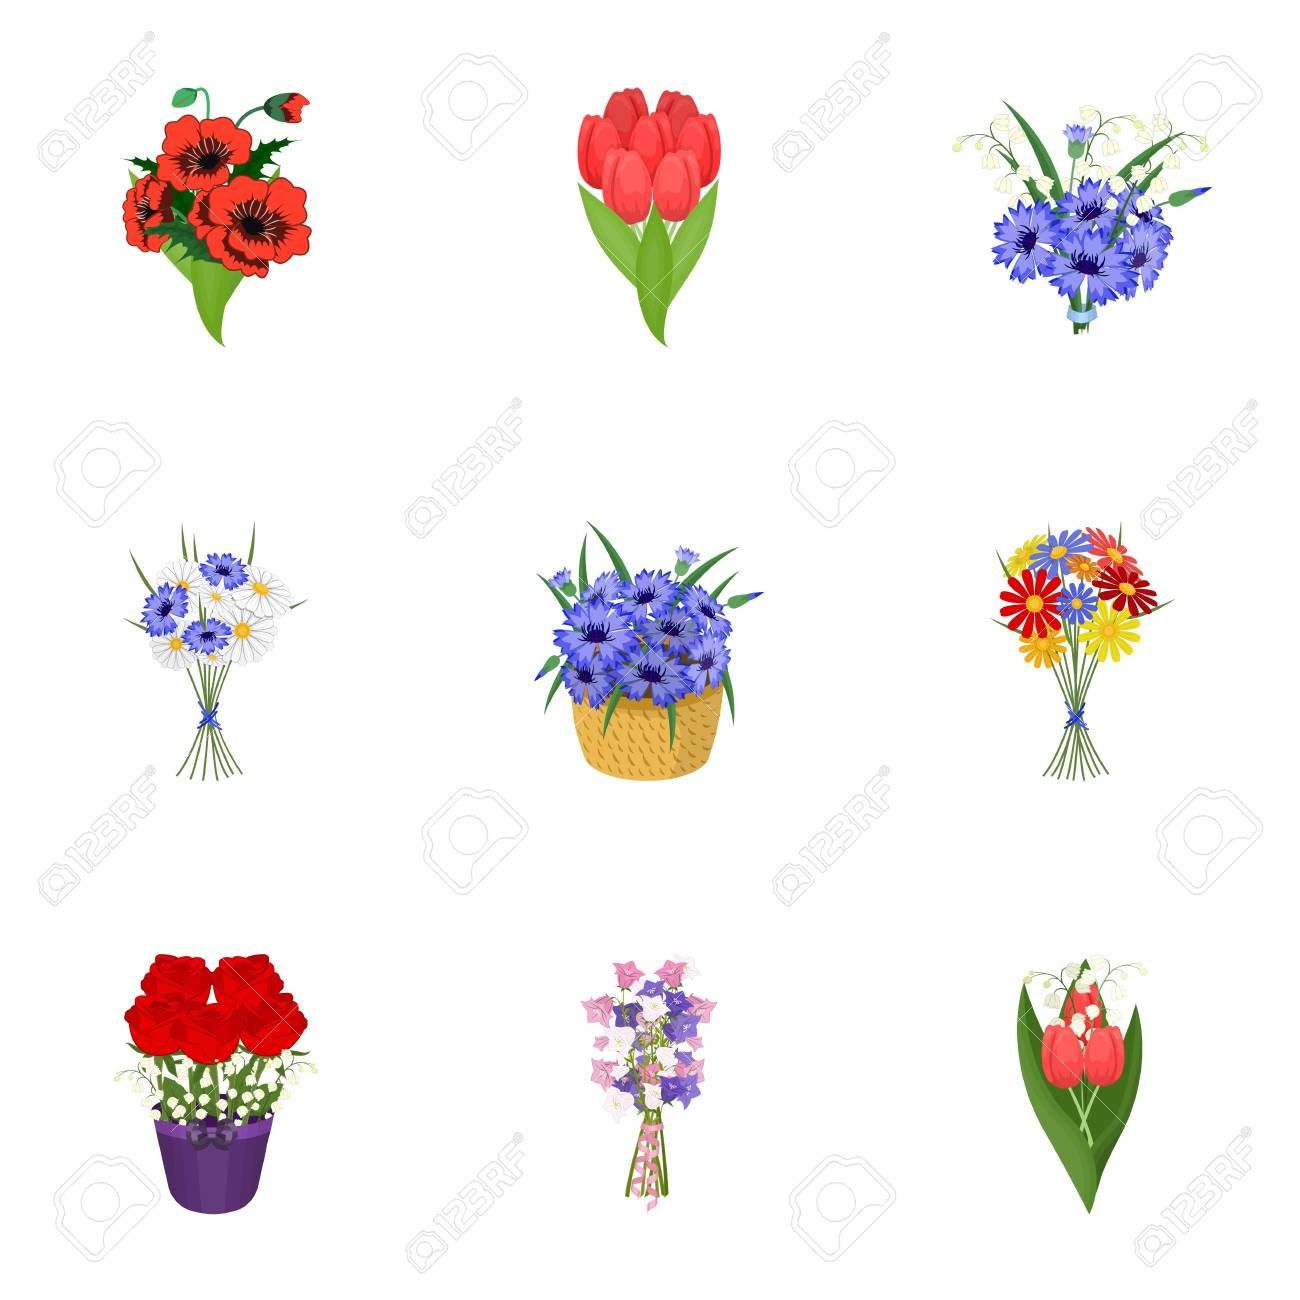 A bouquet of fresh flowers cartoon icons in set collection for a bouquet of fresh flowers cartoon icons in set collection for design various bouquets vector izmirmasajfo Choice Image